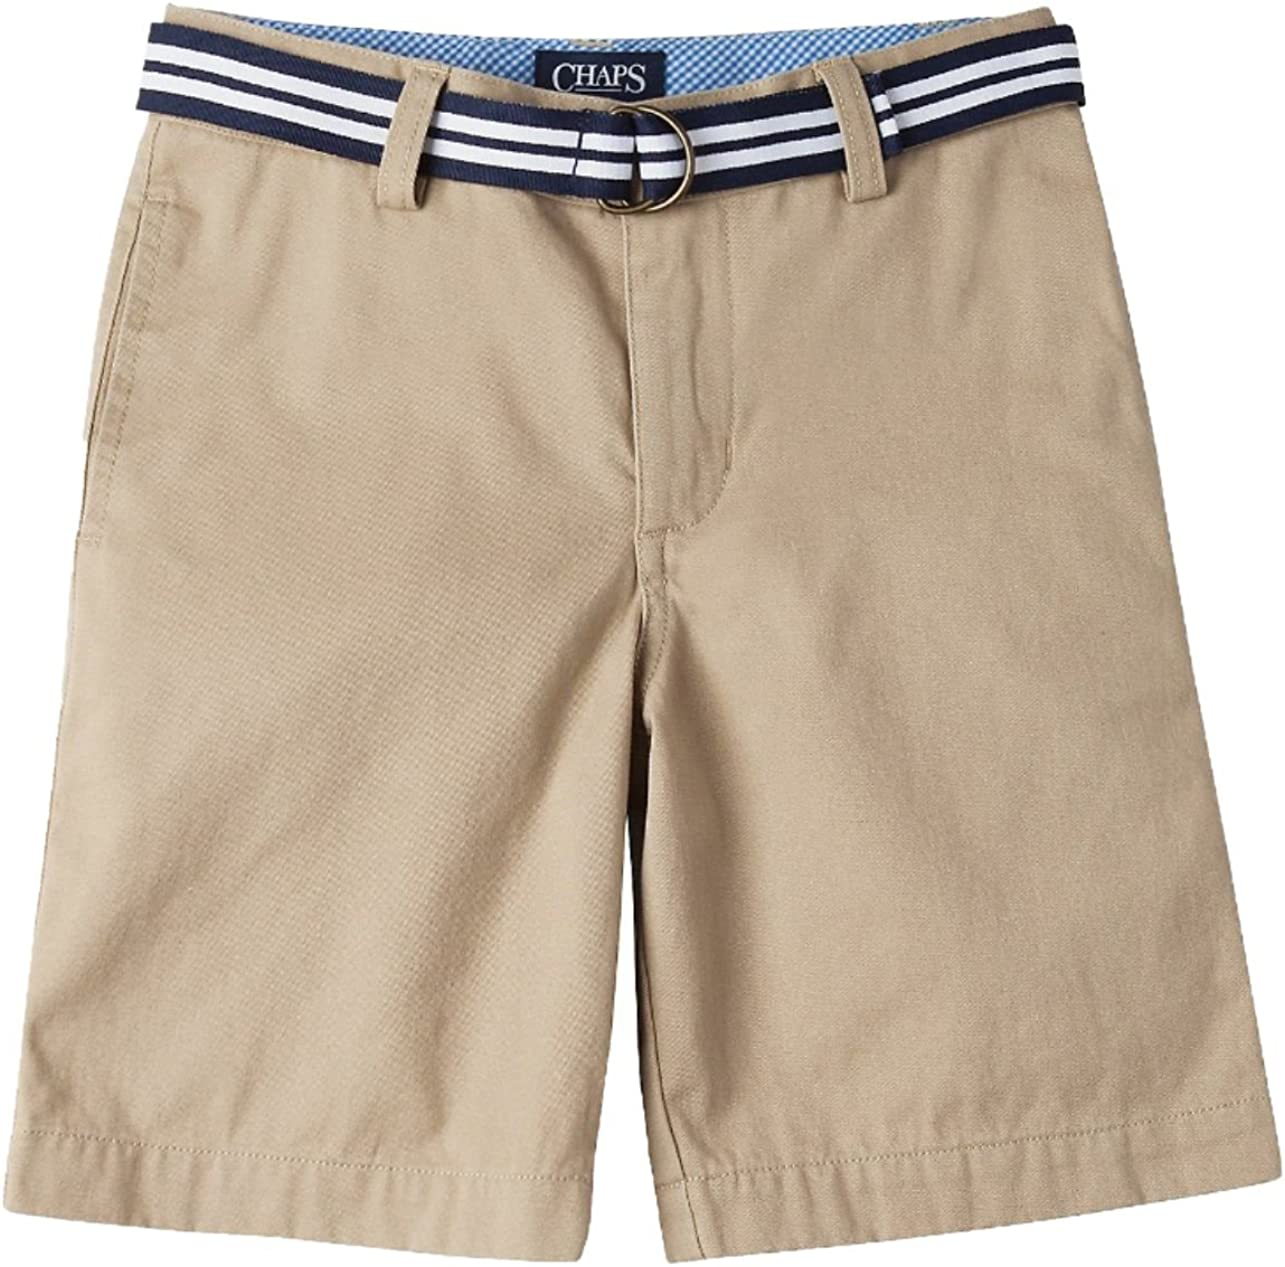 Chaps Boys' Chino Flat Front Belted Shorts